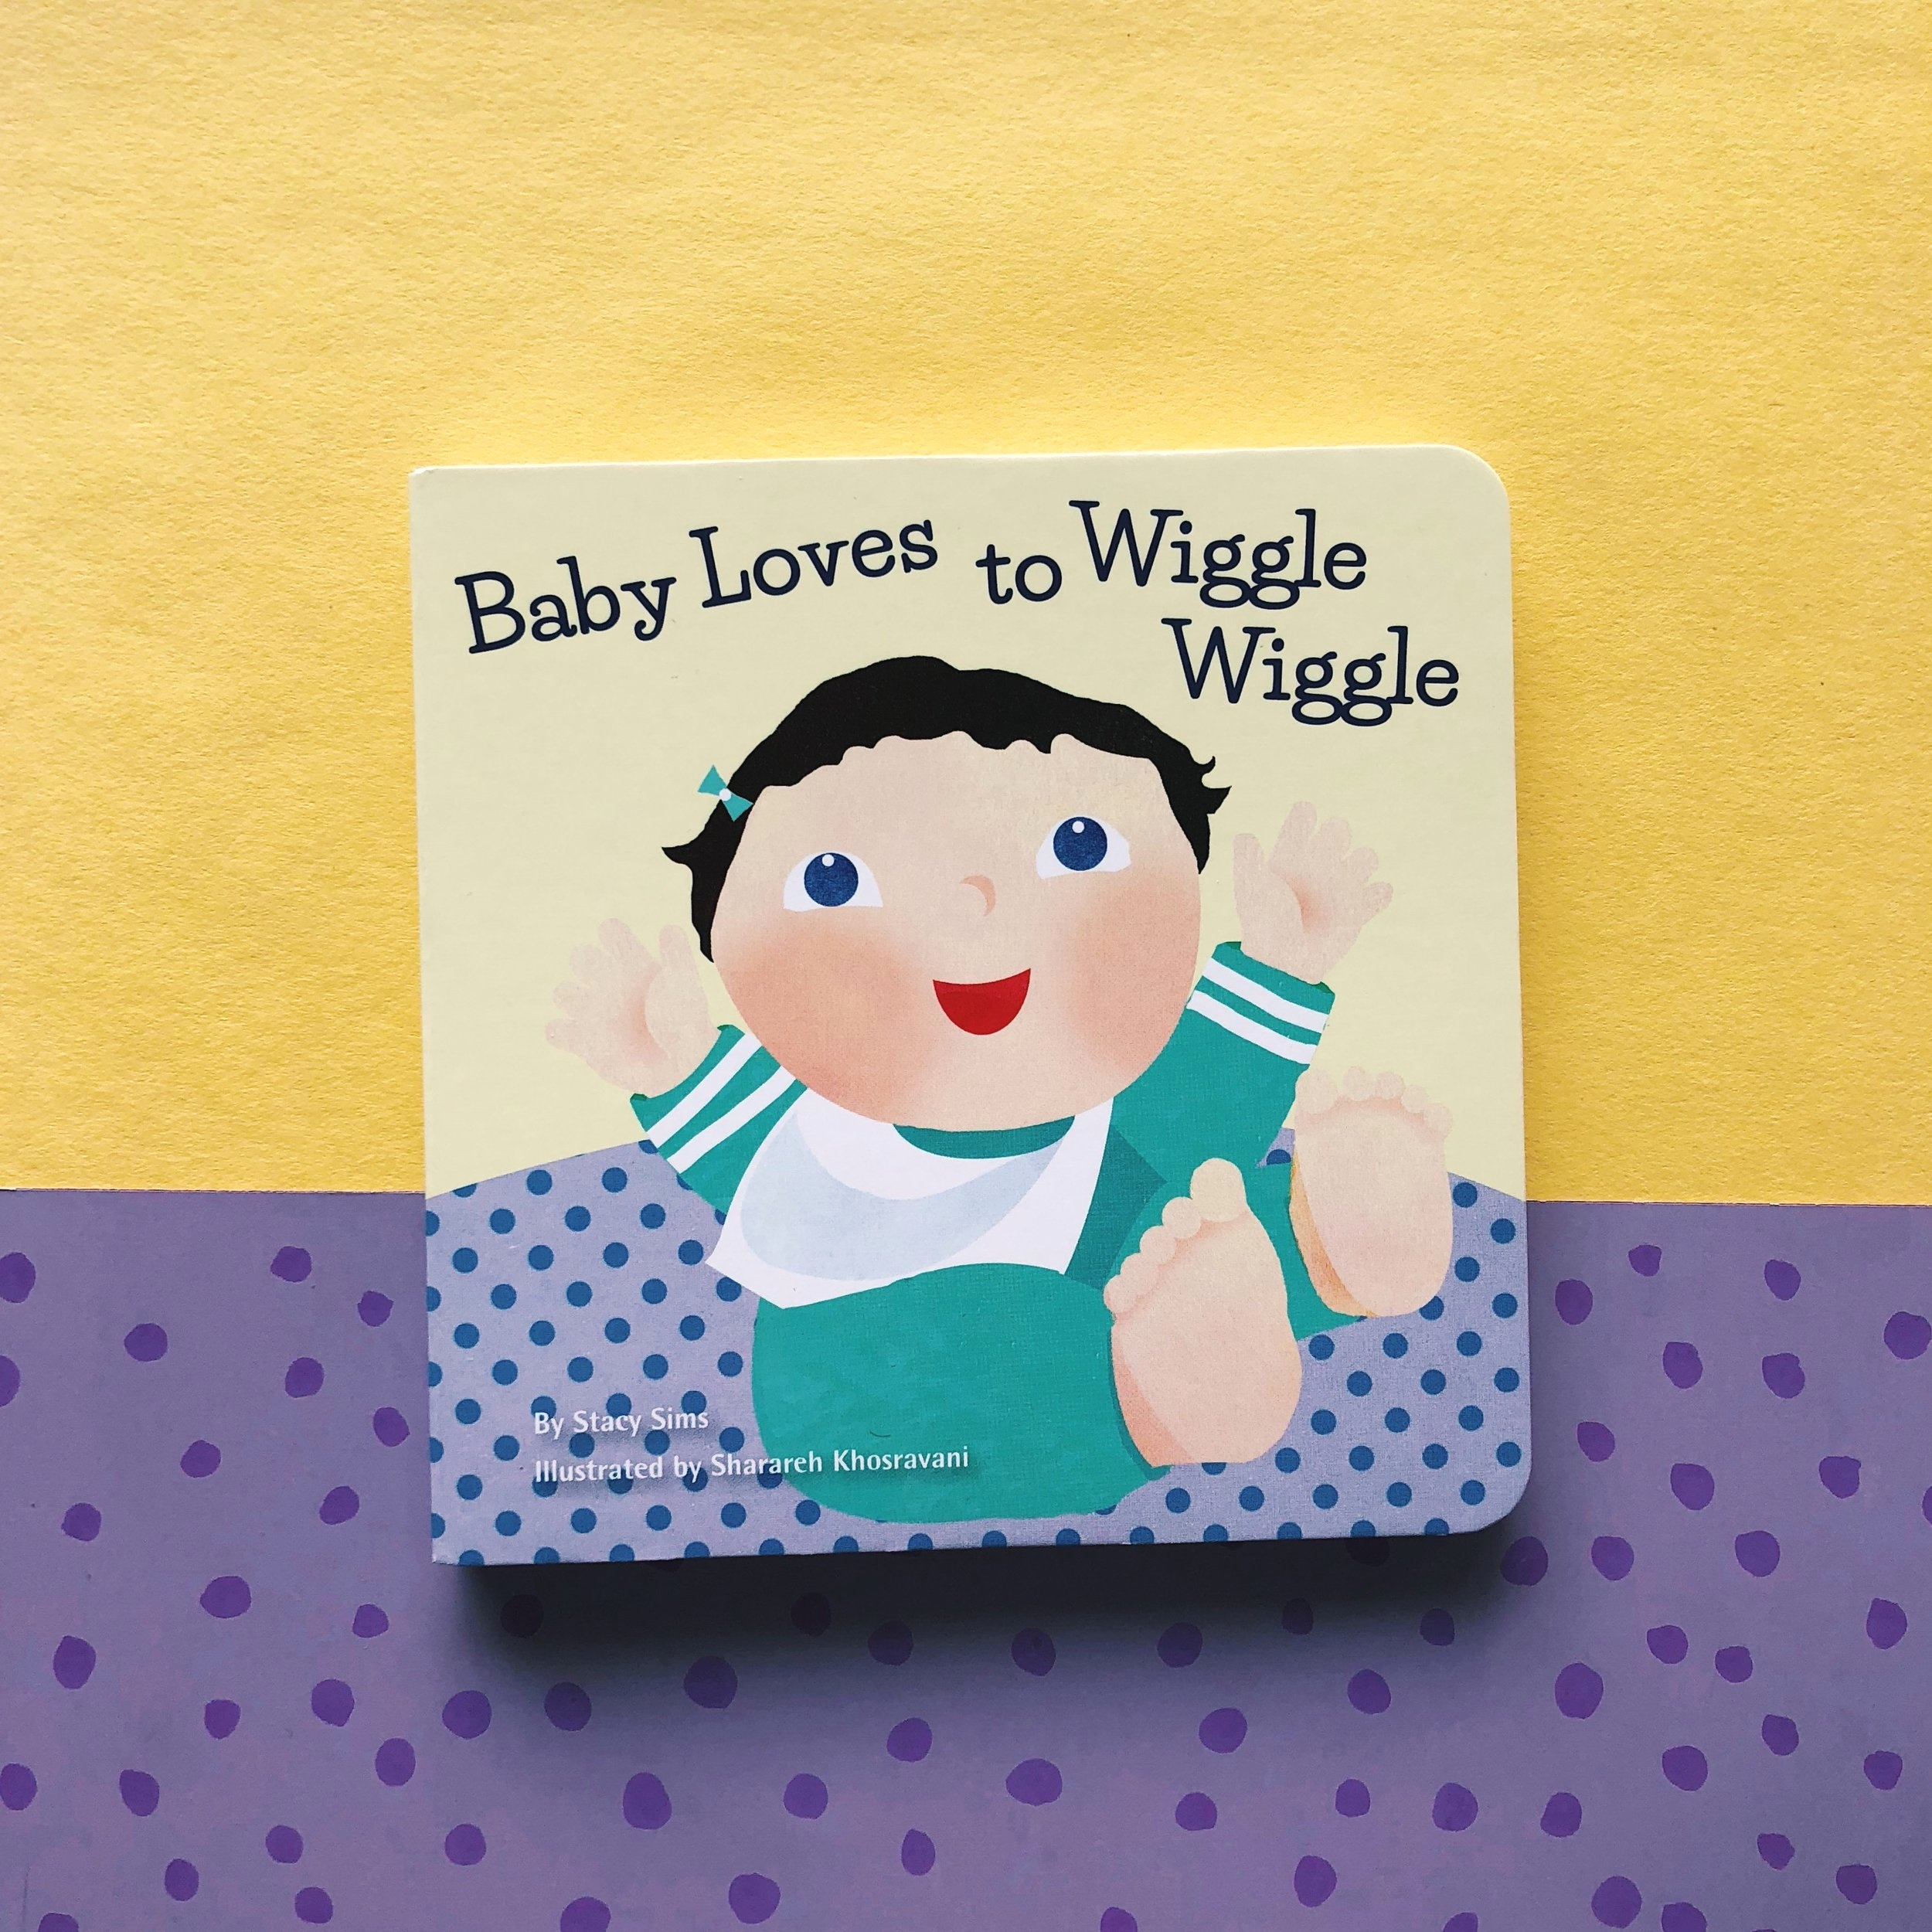 Baby Loves to Wiggle Wiggle     written by Stacy Sims and illustrated by Sharareh Khosravani